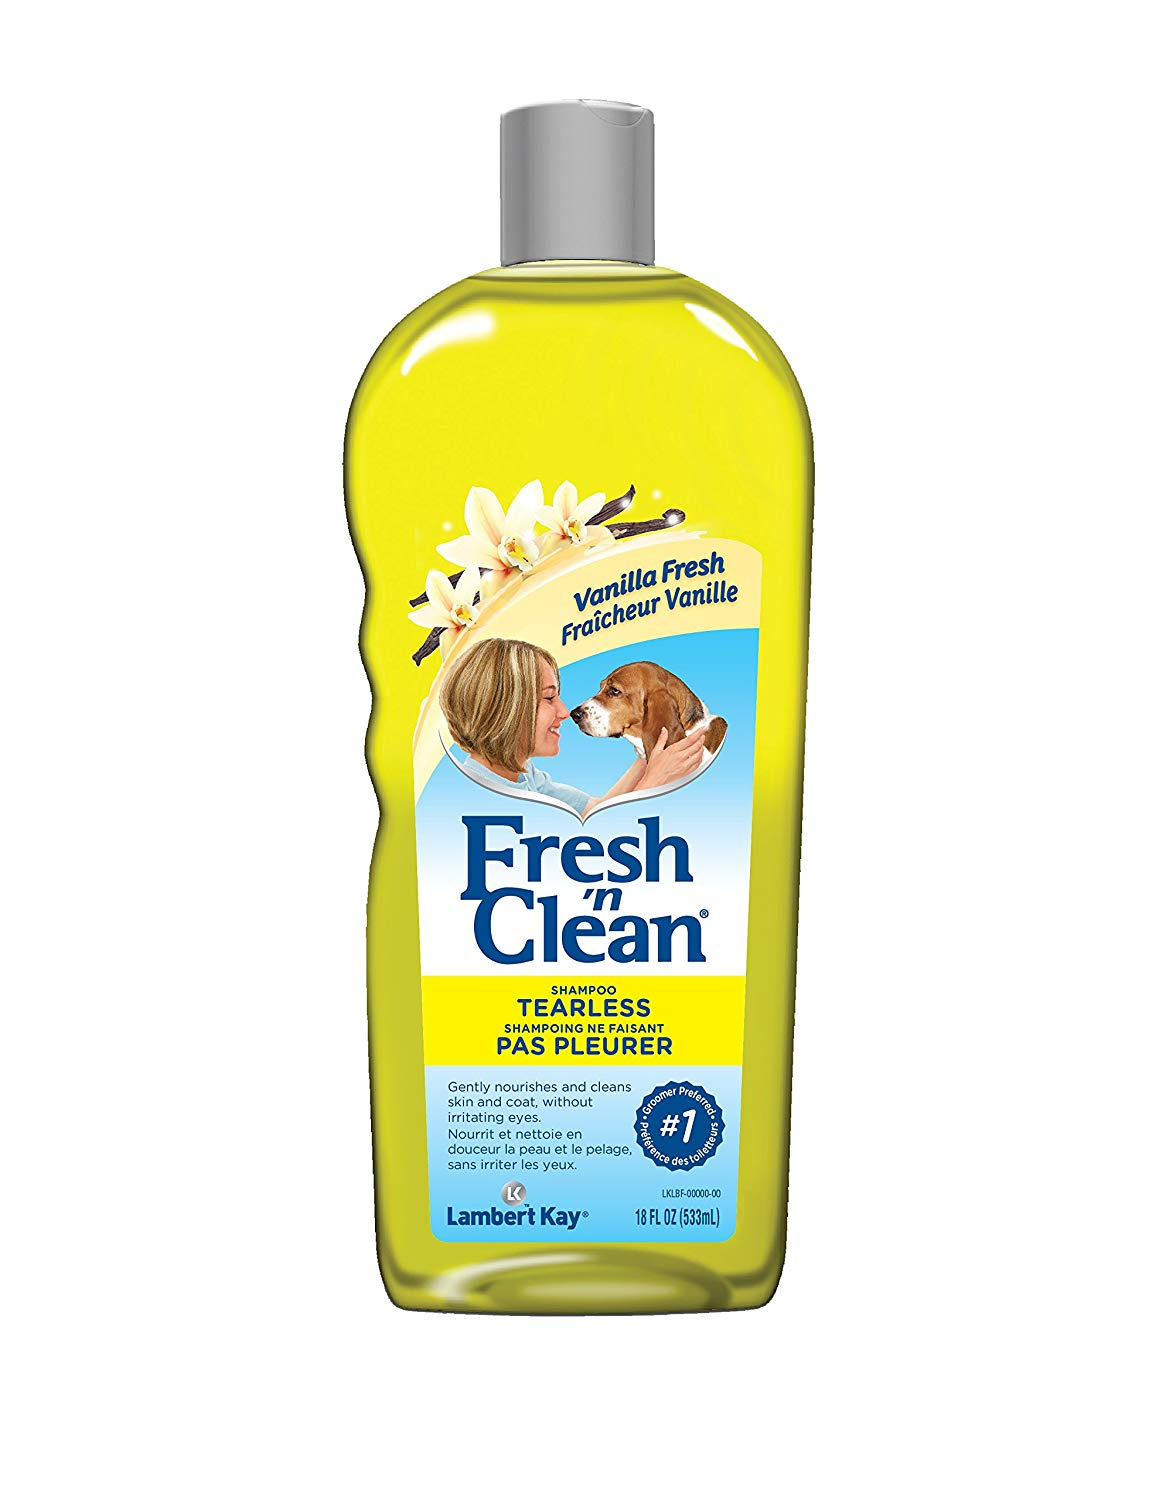 Top 10 Best Shampoo For Dogs in India